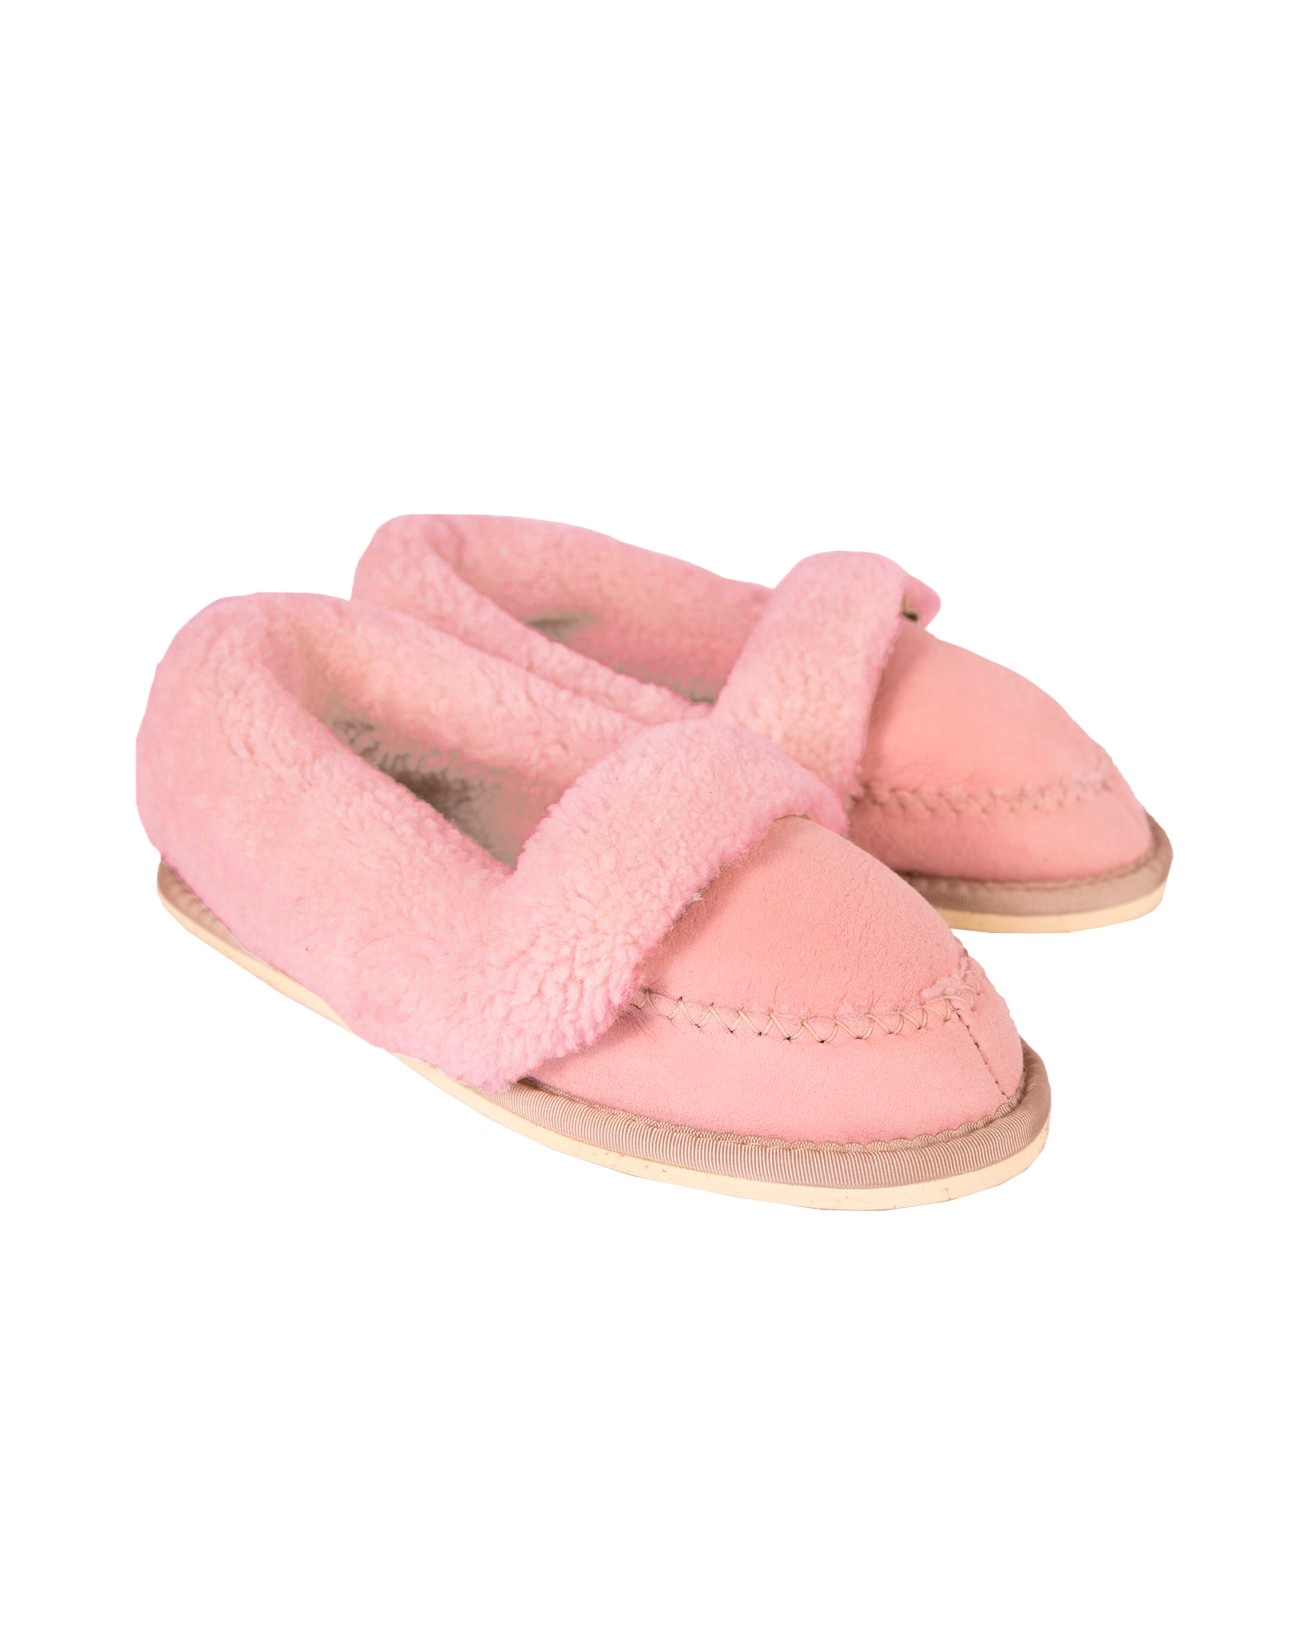 Halona Slipper - Size 7 - Pink with pink wool - 123